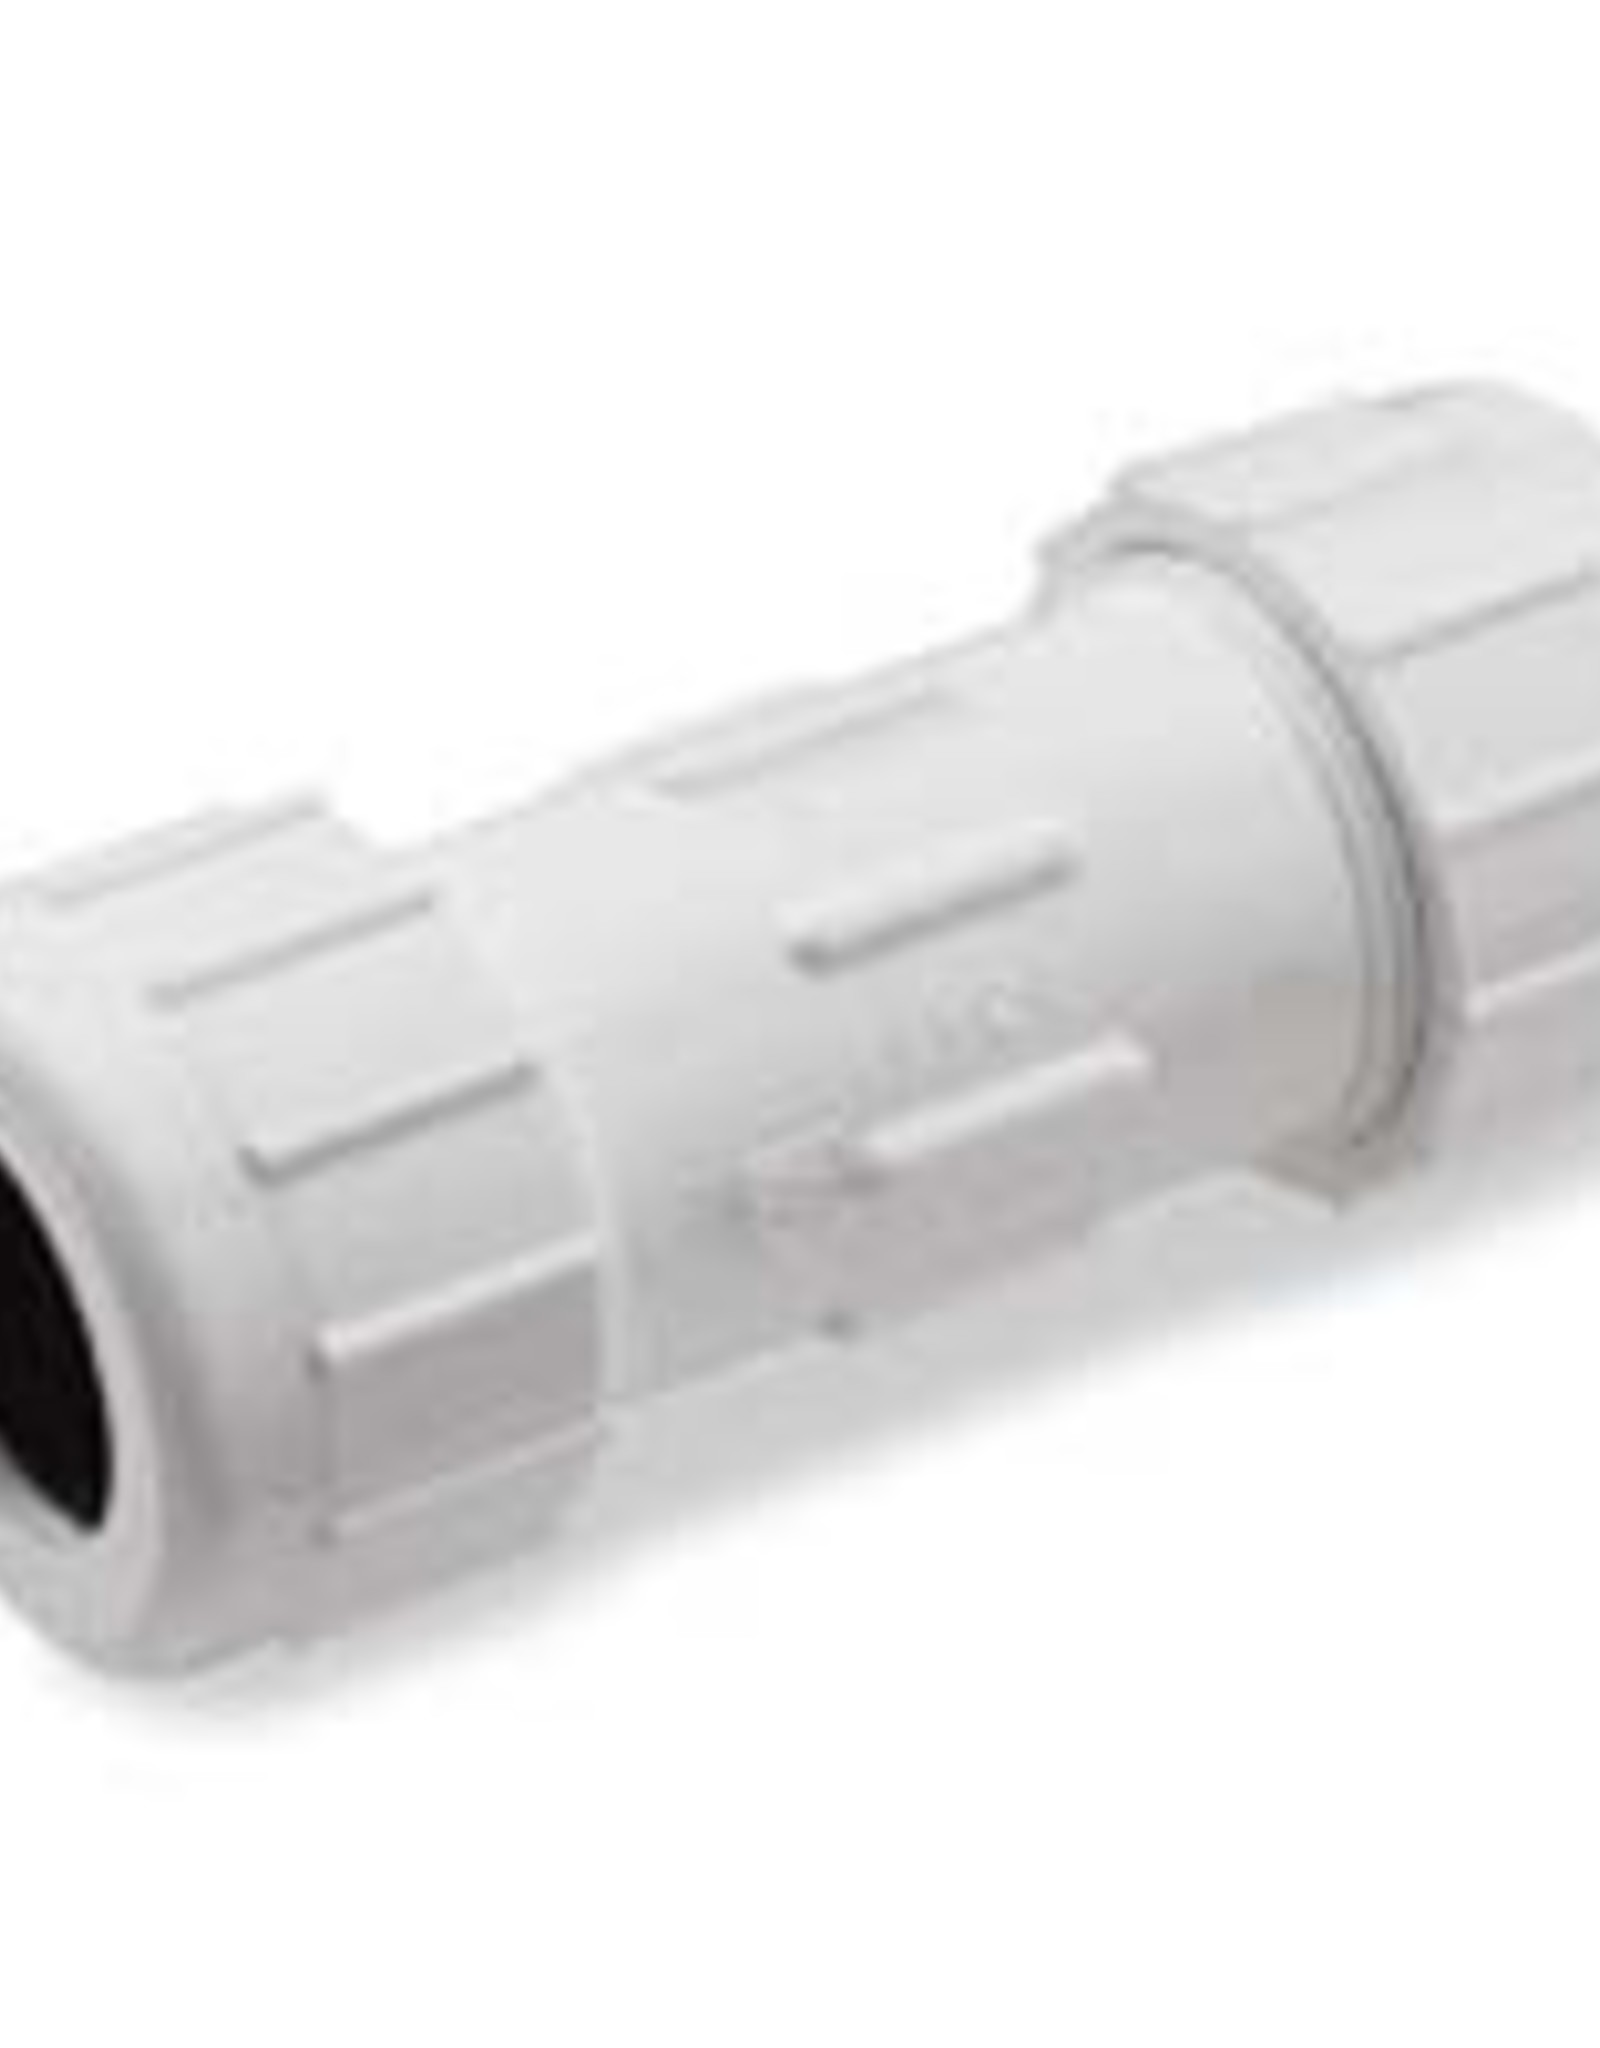 Nds PVC 3/4 Compression Repair Coupling